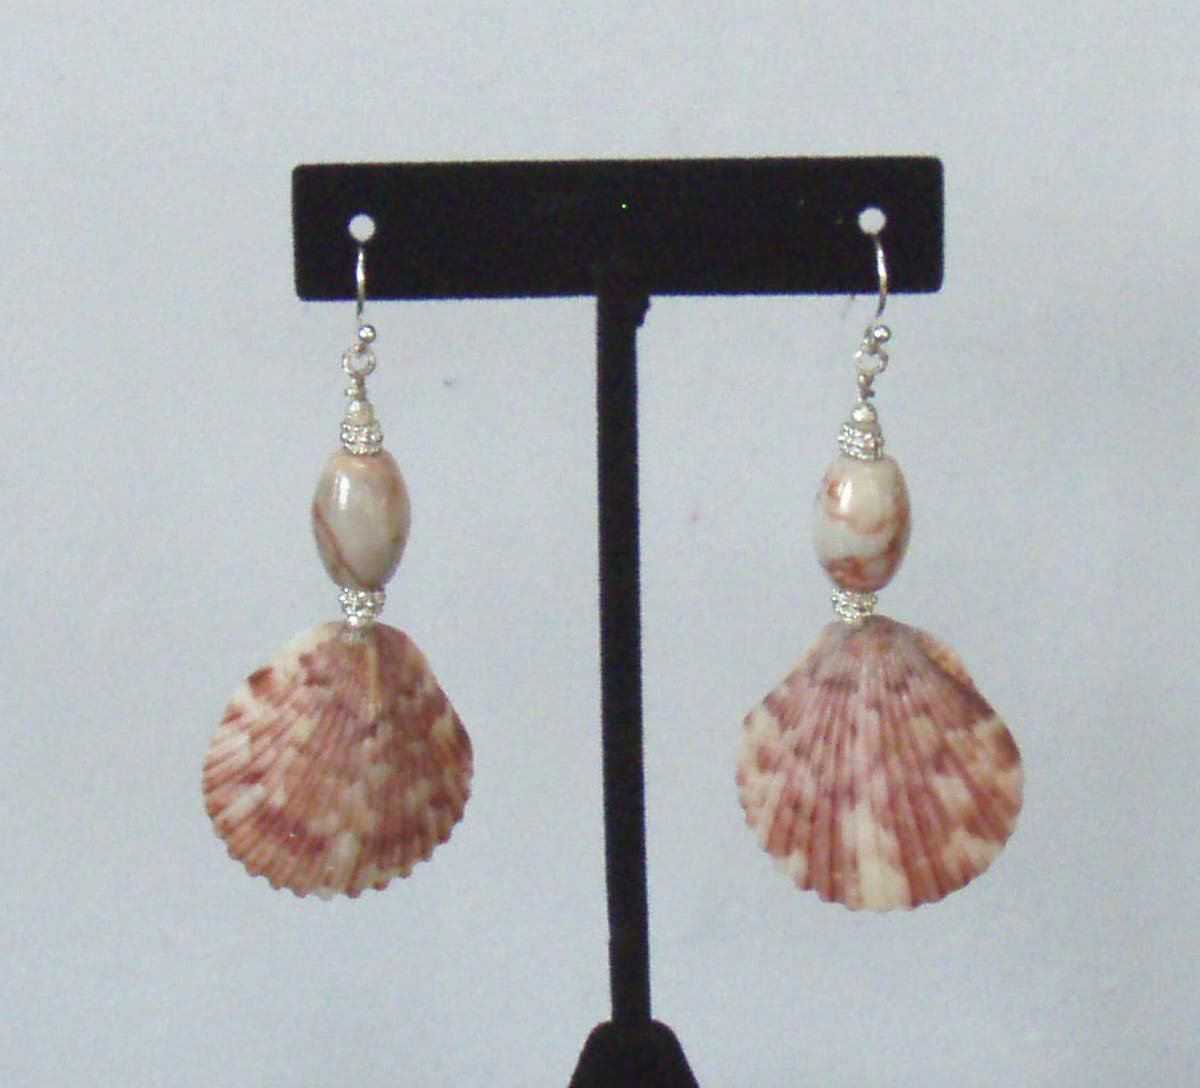 Calico Scallop Shell and Red Line Marble Earrings